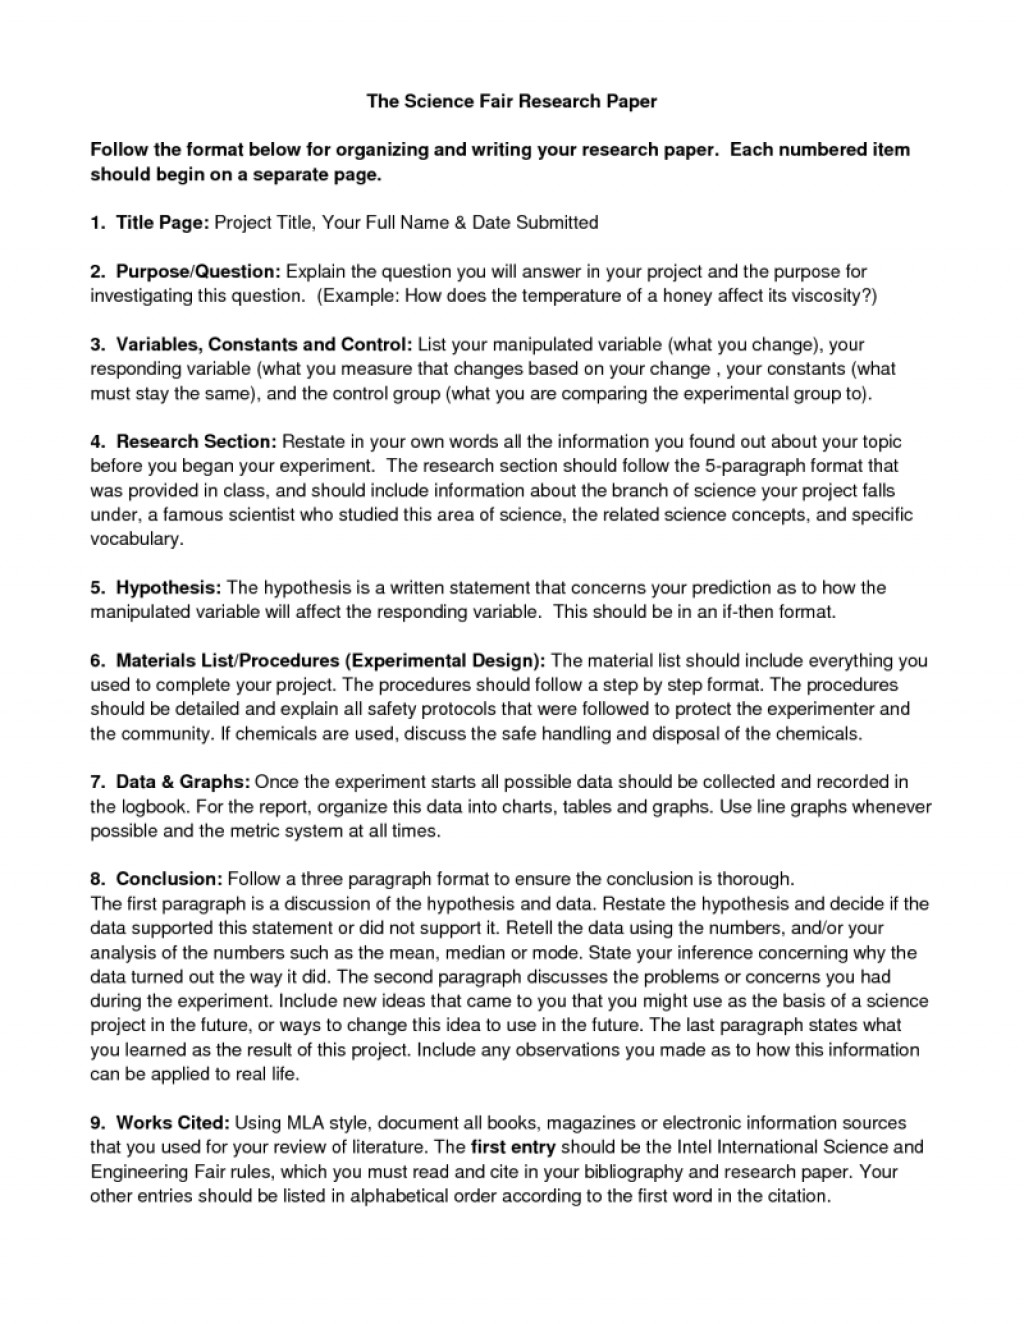 010 Ideas Of Science Fairarch Paper Outline Unique Political Guidelines Guidelinesresize8002c1035 4th Grade Astounding Research Large